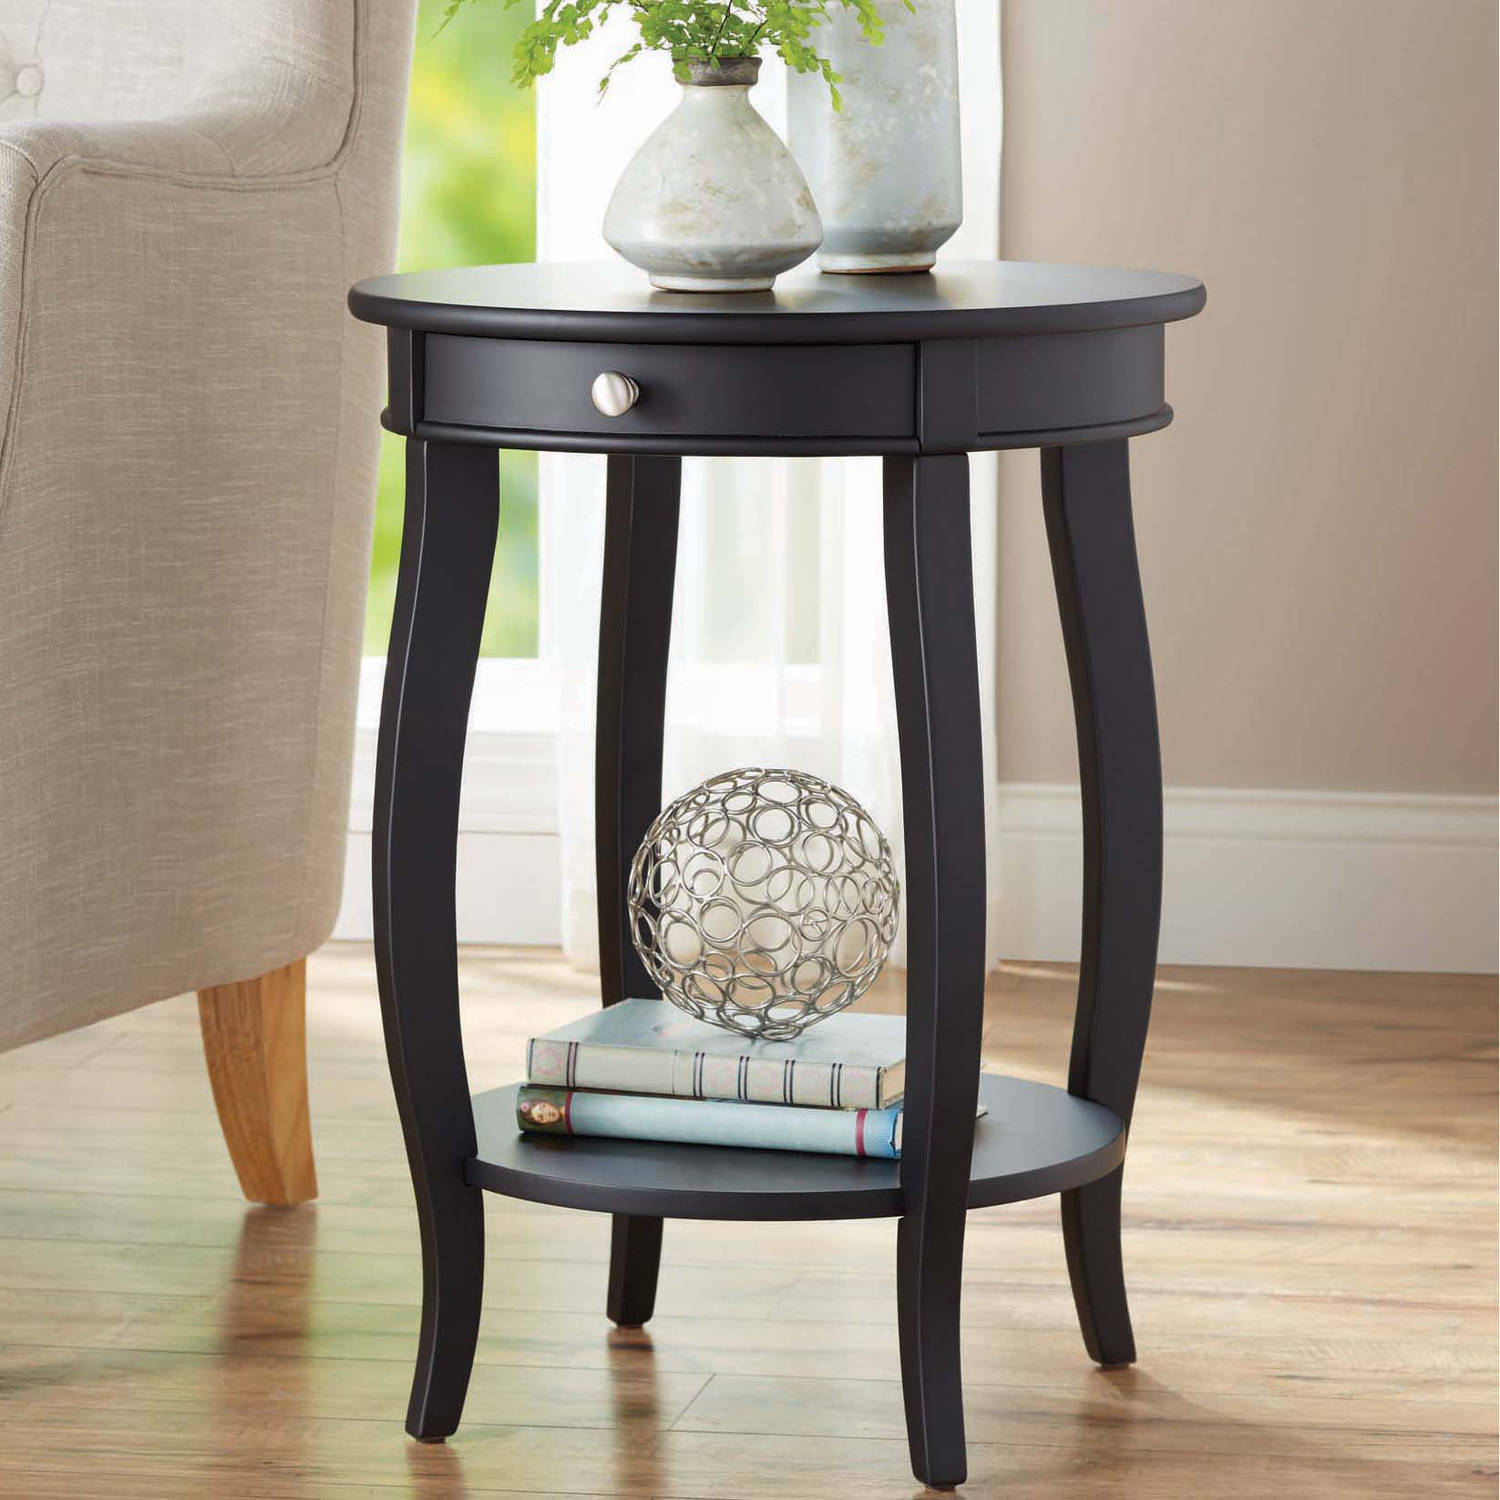 Beau Better Homes U0026 Gardens Round Accent Table With Drawer, Multiple Colors    Walmart.com